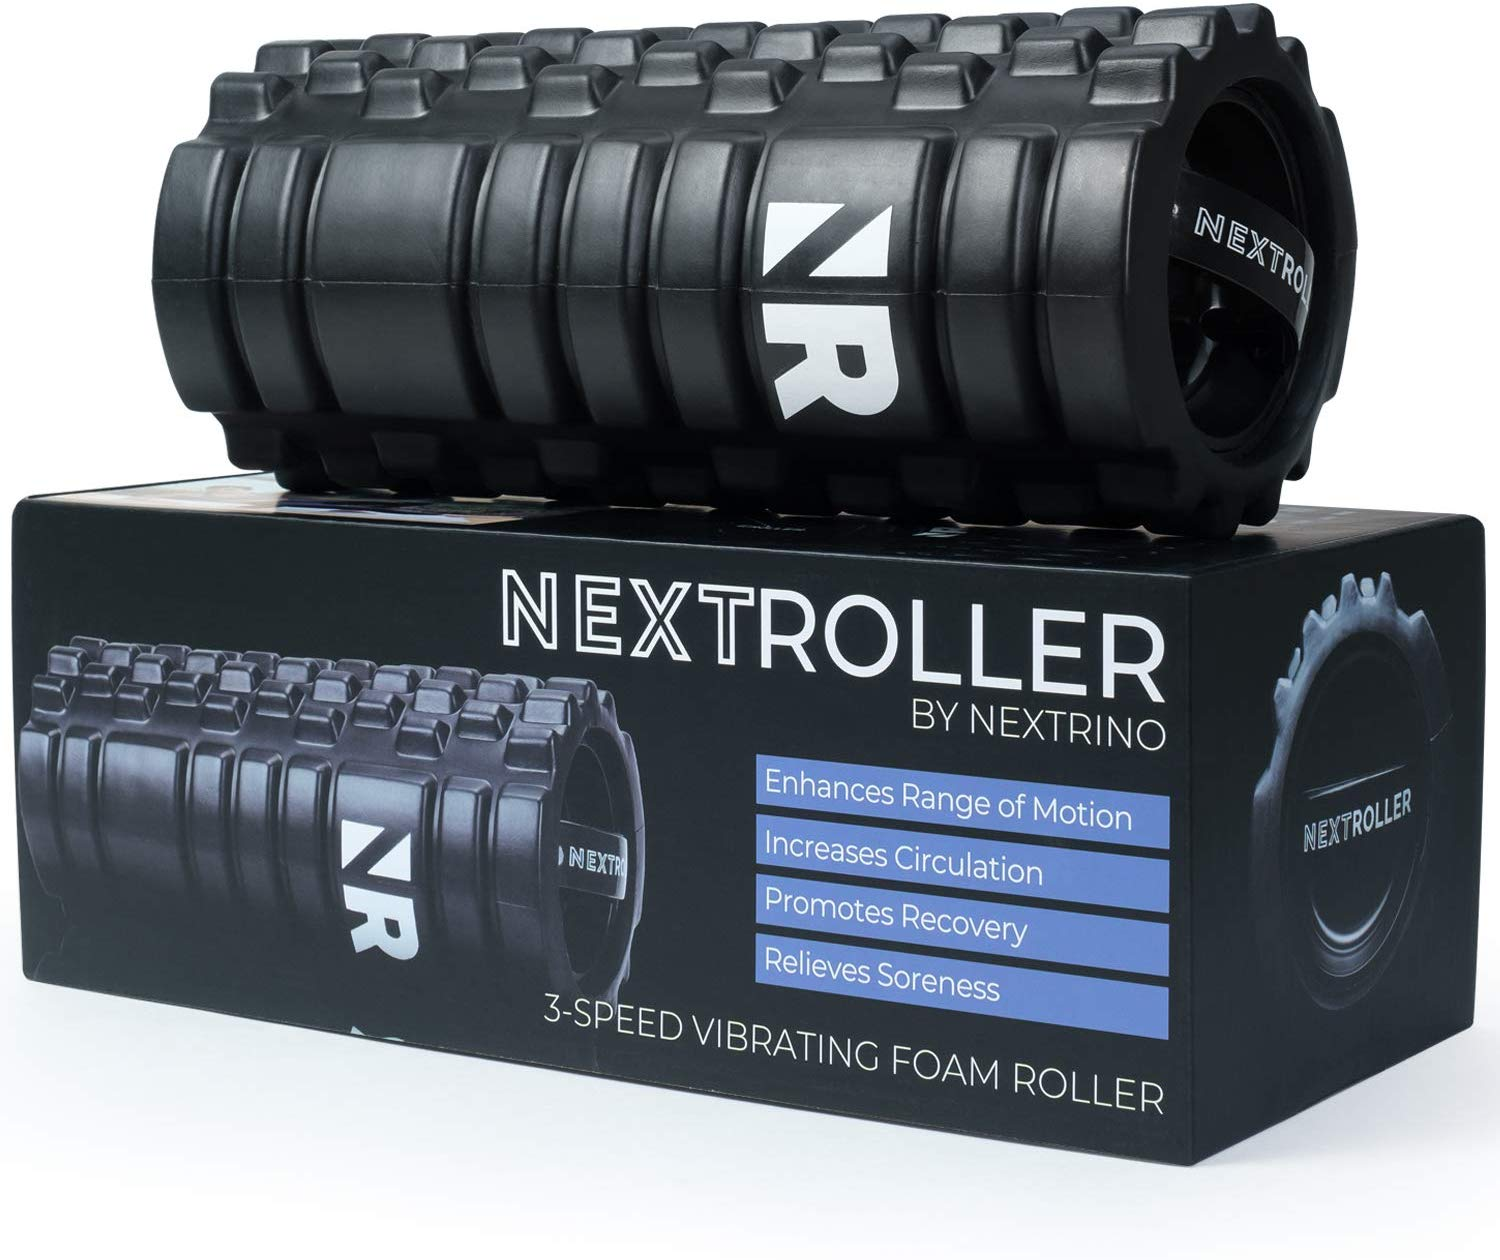 Review of NextRoller 3-Speed Vibrating Foam Roller